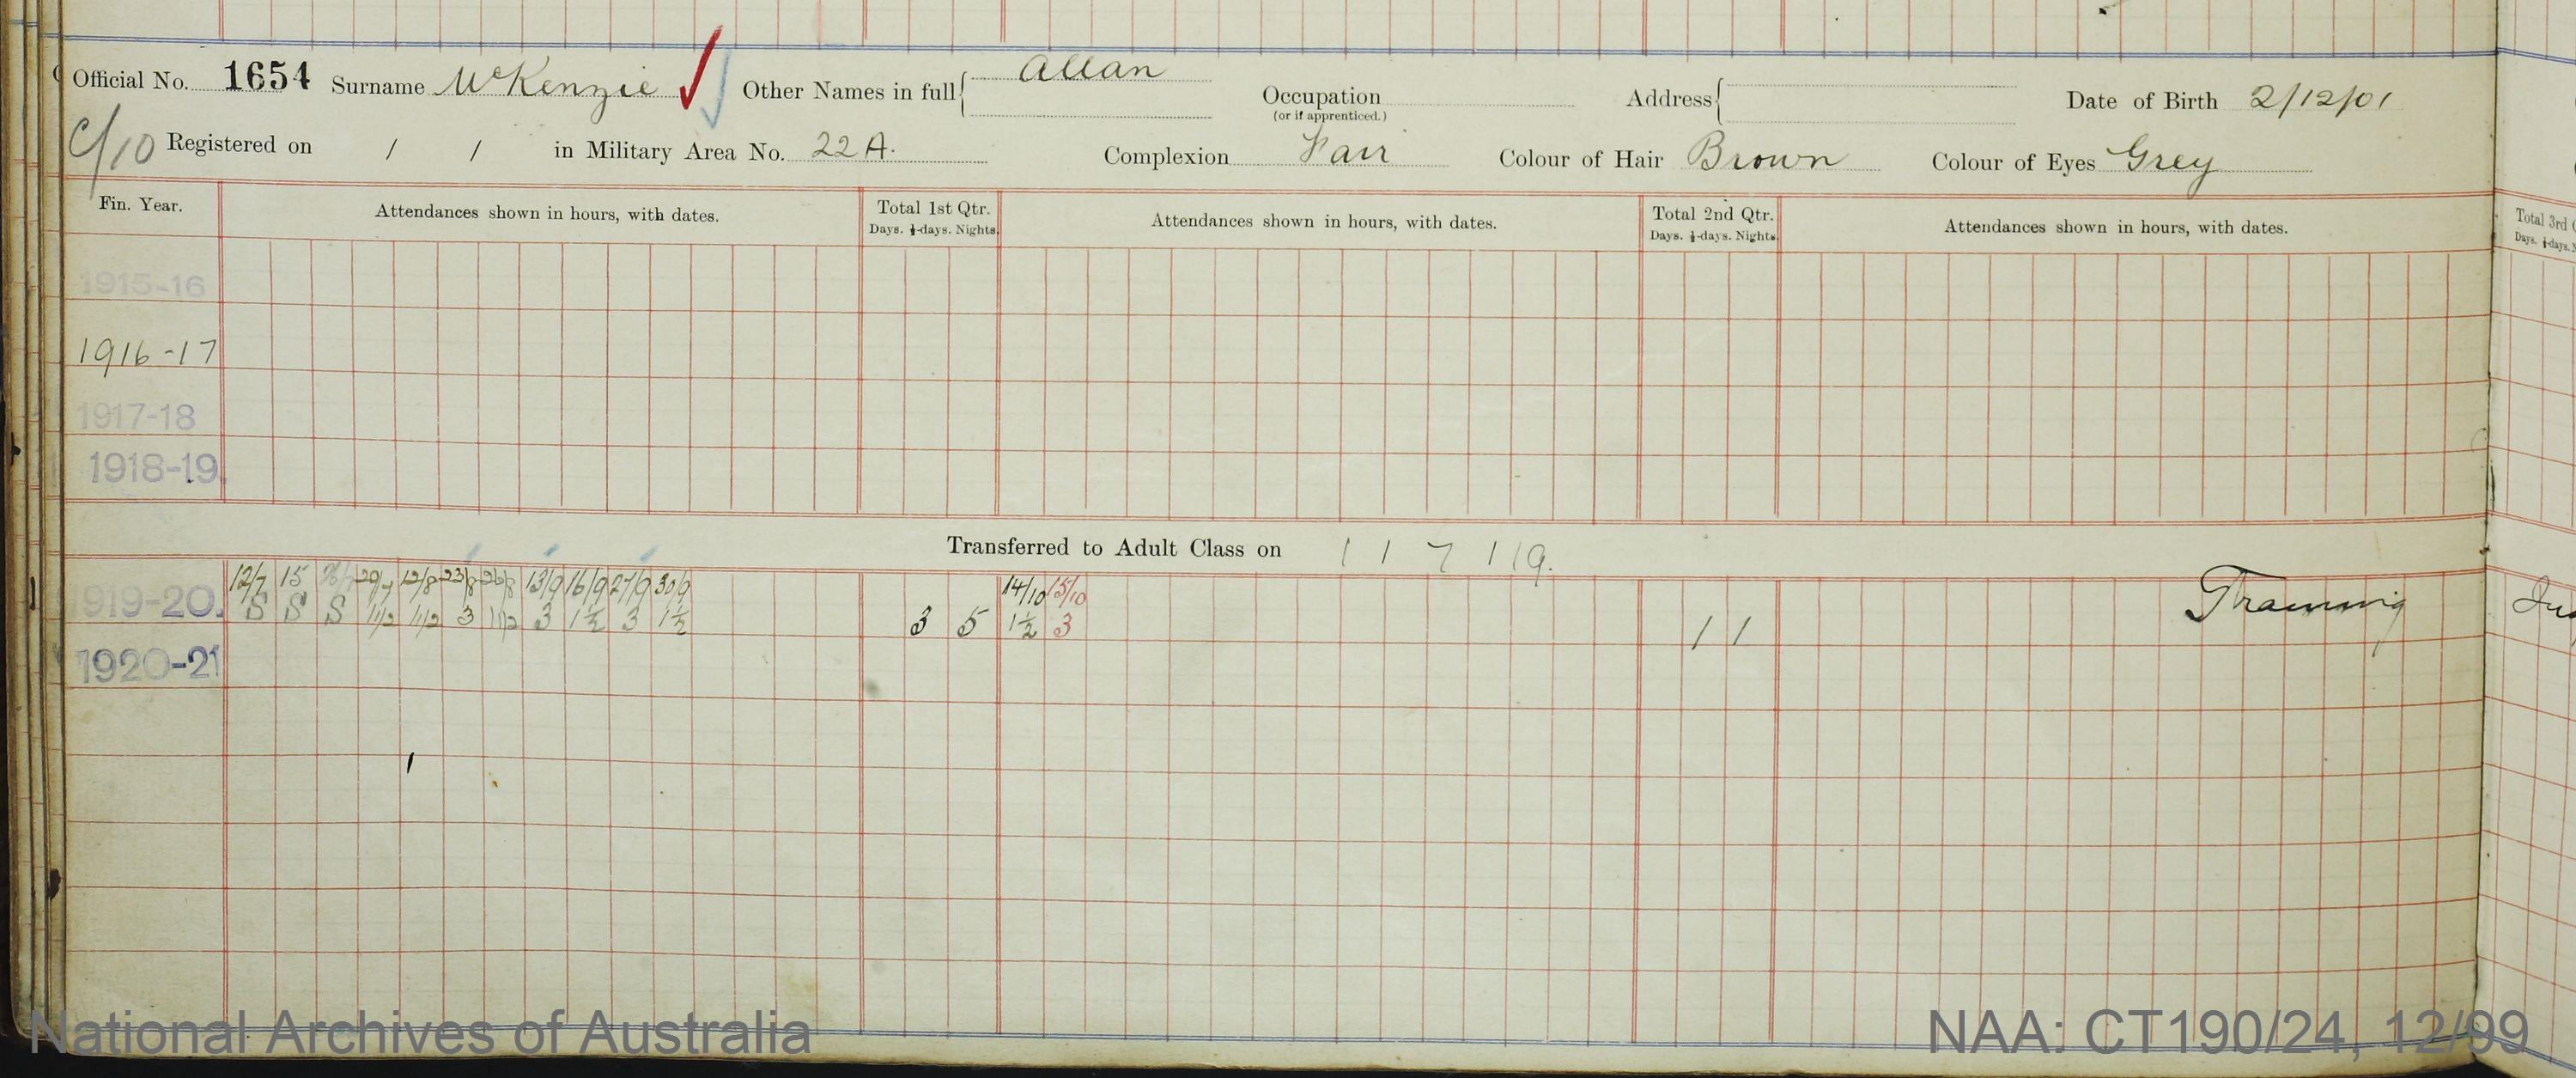 SURNAME - MCKENZIE;  GIVEN NAME(S) - Allan;  OFFICIAL NUMBER - 1654;  DATE OF BIRTH - 2 December 1901;  PLACE OF BIRTH - [Unknown];  NEXT OF KIN - [Unknown];  SERVICE/STATION - Sydney NSW;  REGISTRATION DATE - [Unknown]